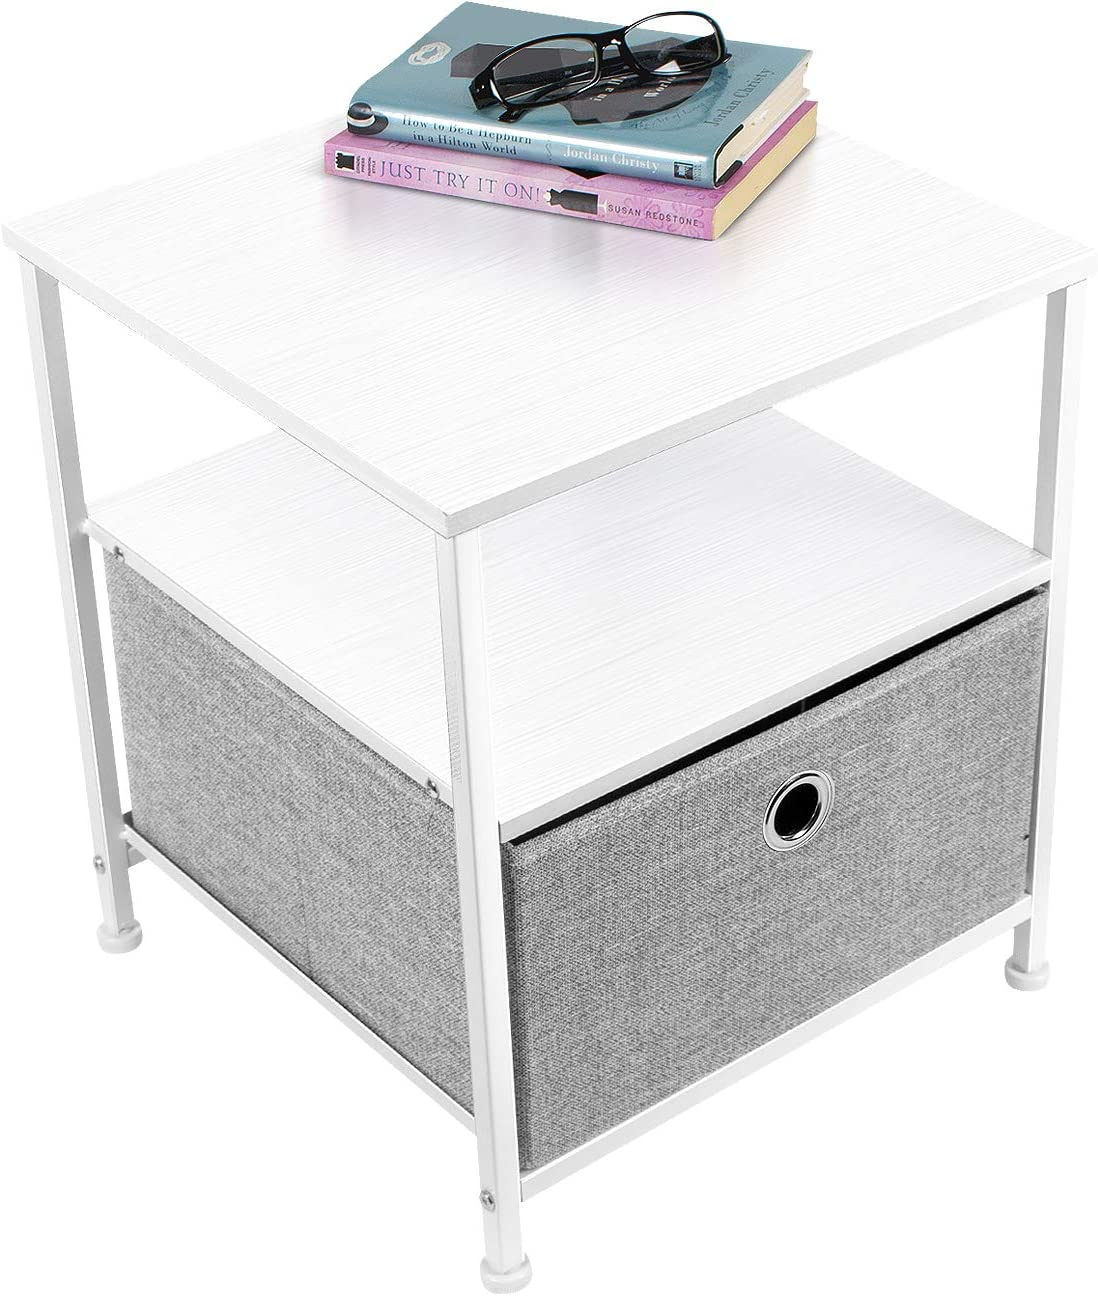 Sorbus Nightstand 1-Drawer Shelf Storage- Bedside Furniture Accent End Table Chest for Home, Bedroom, Office, College Dorm, Steel Frame, Wood Top, Easy Pull Fabric Bins White Gray